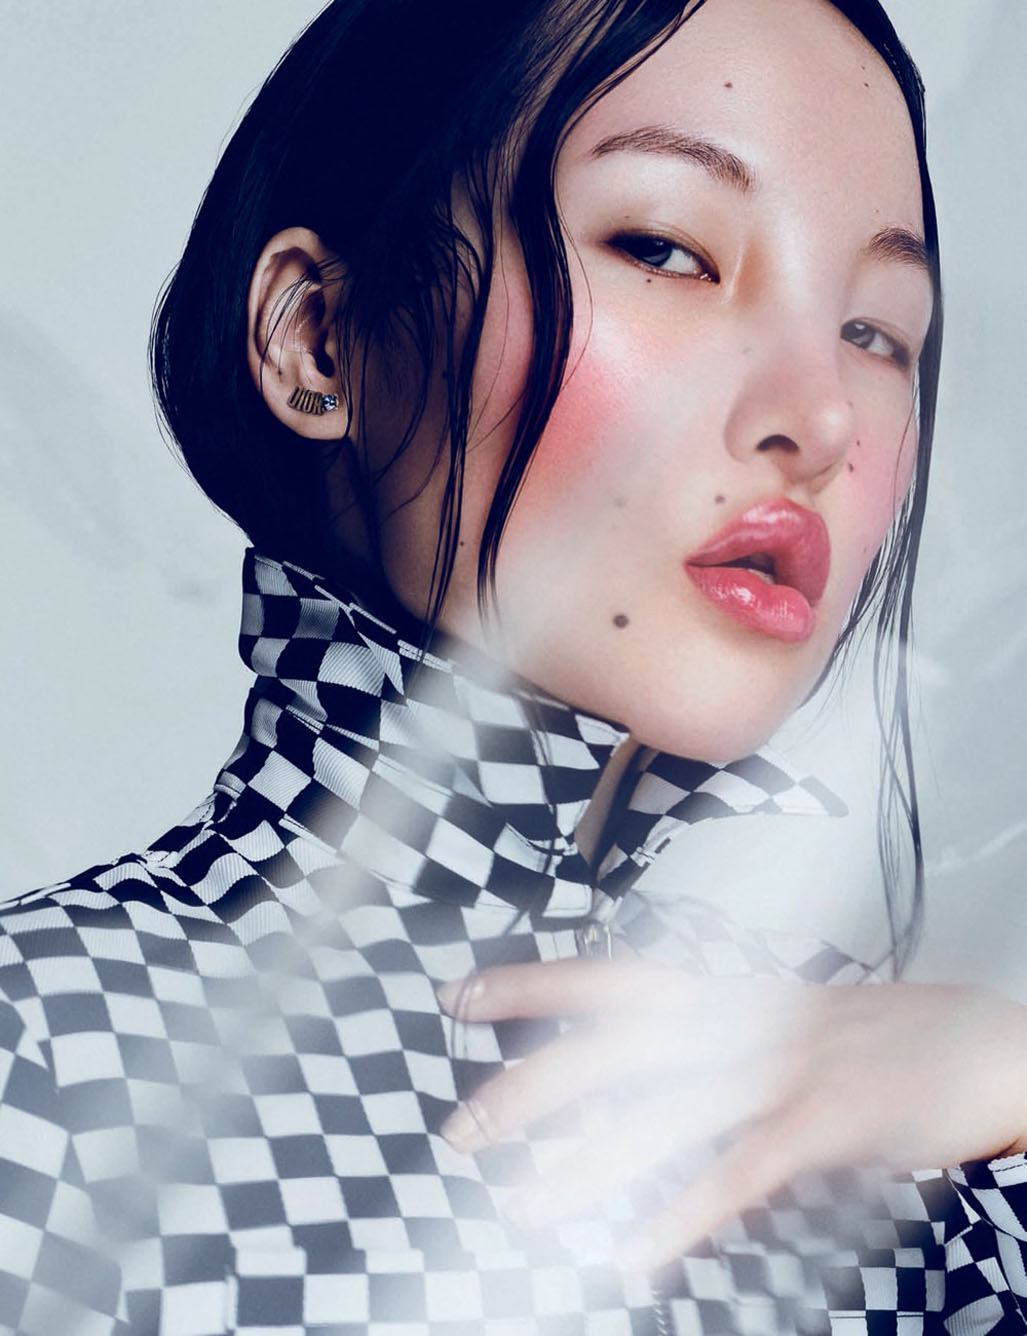 Prism / Tsunaina by Baard Lunde - Hunger Magazine issue 14